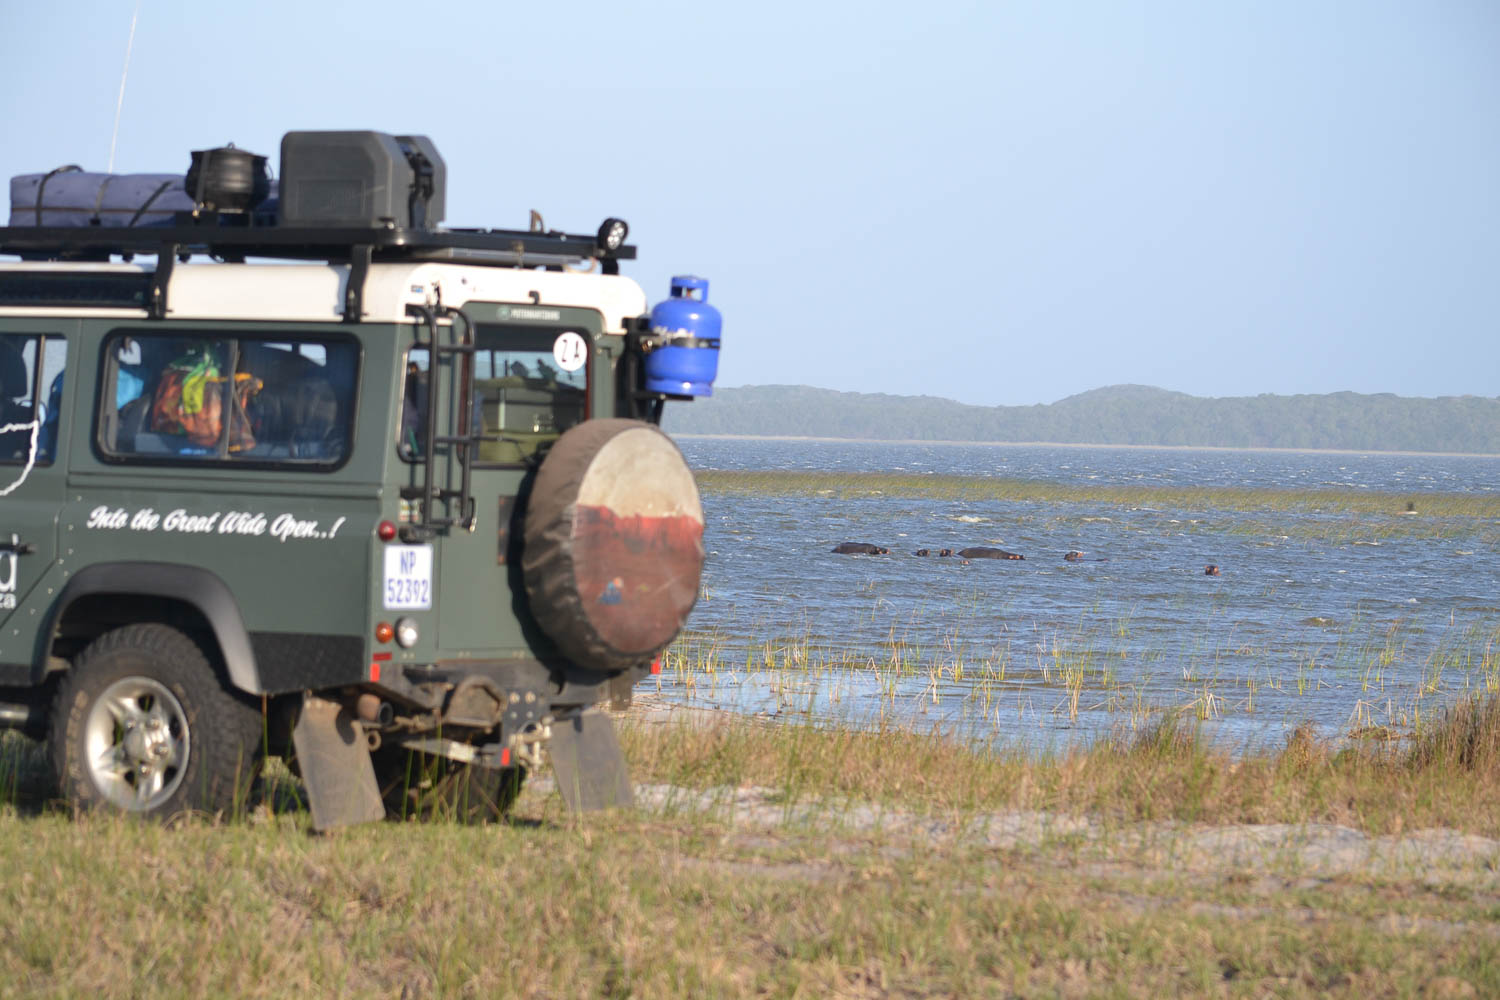 Hippos in Botswana with South Africa Overland 4x4 Tours